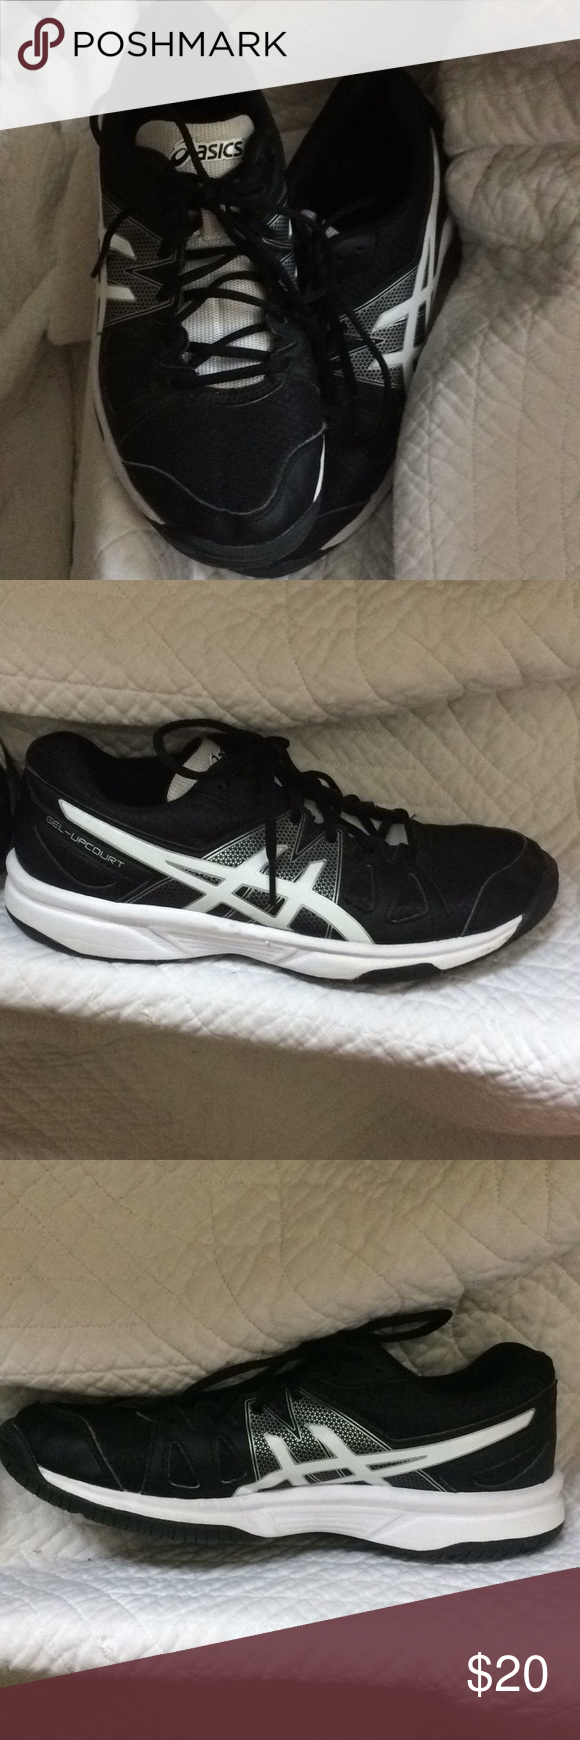 Oasis Volleyball Shoes Black White Silver Oasis Gel Upcourt Volleyball Shoes Size 7 Runs A Little Large Offers Welcome Volleyball Shoes Oasis Shoes Shoes